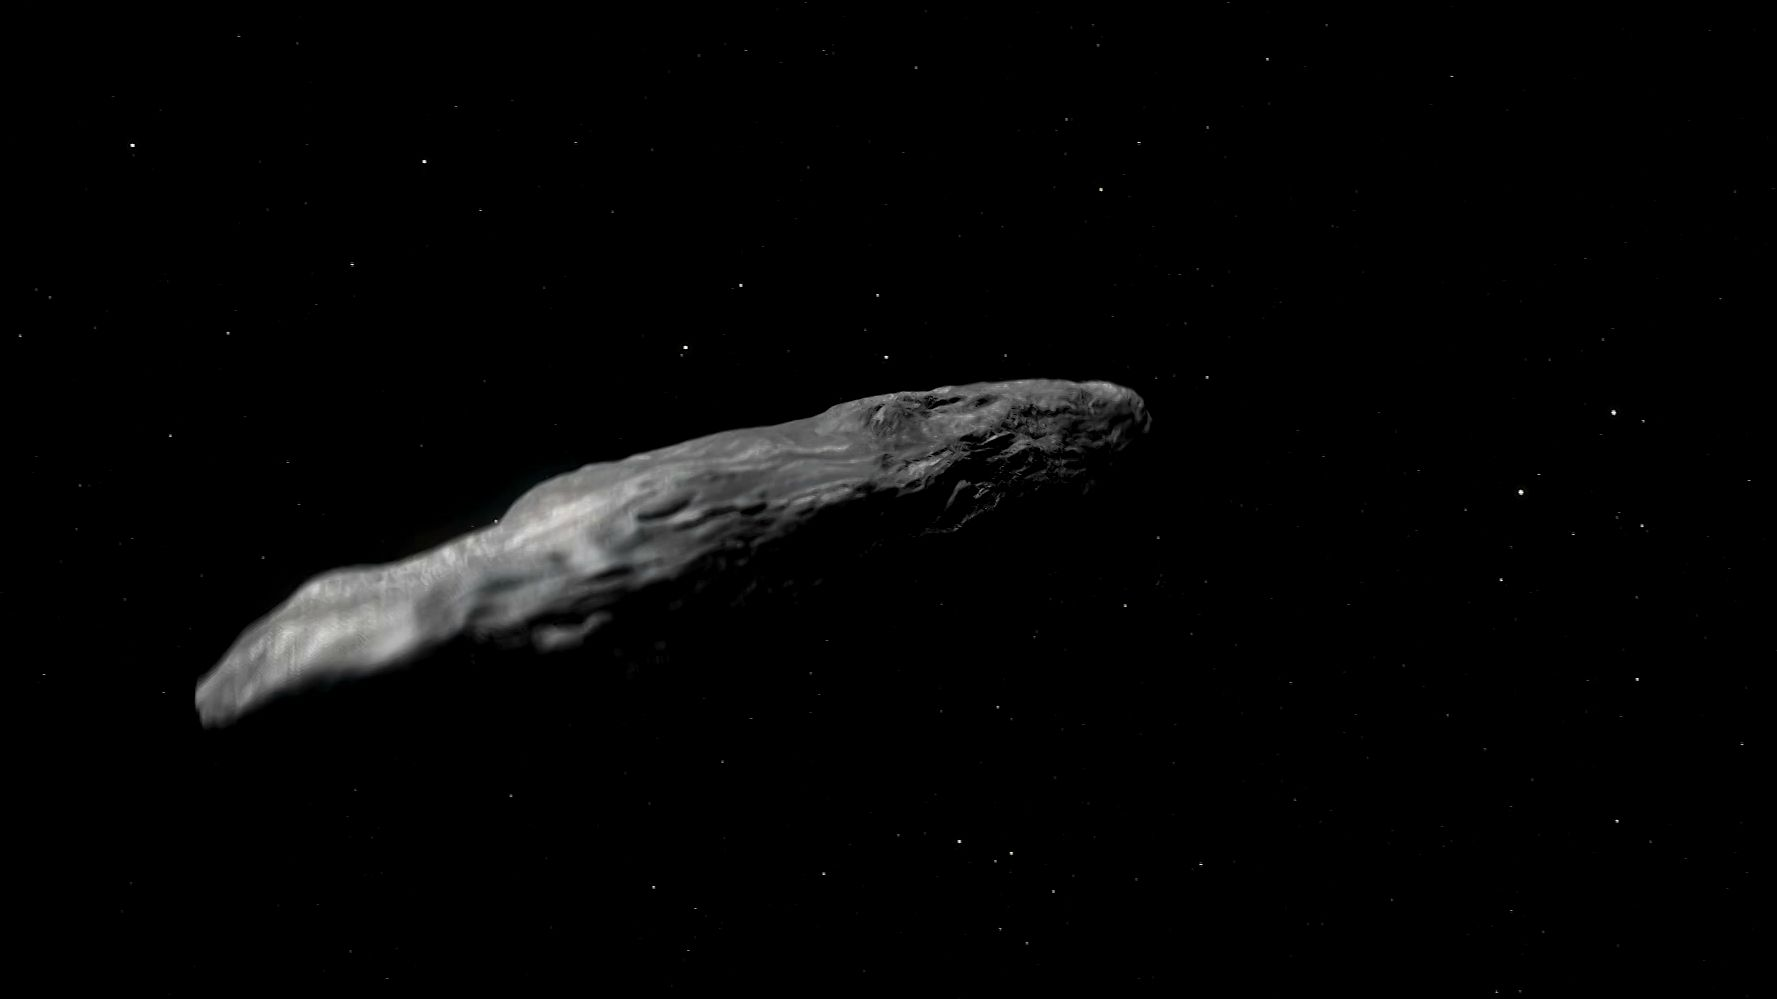 Illustration und Animation des interstellaren Asteroiden 'Oumuamua